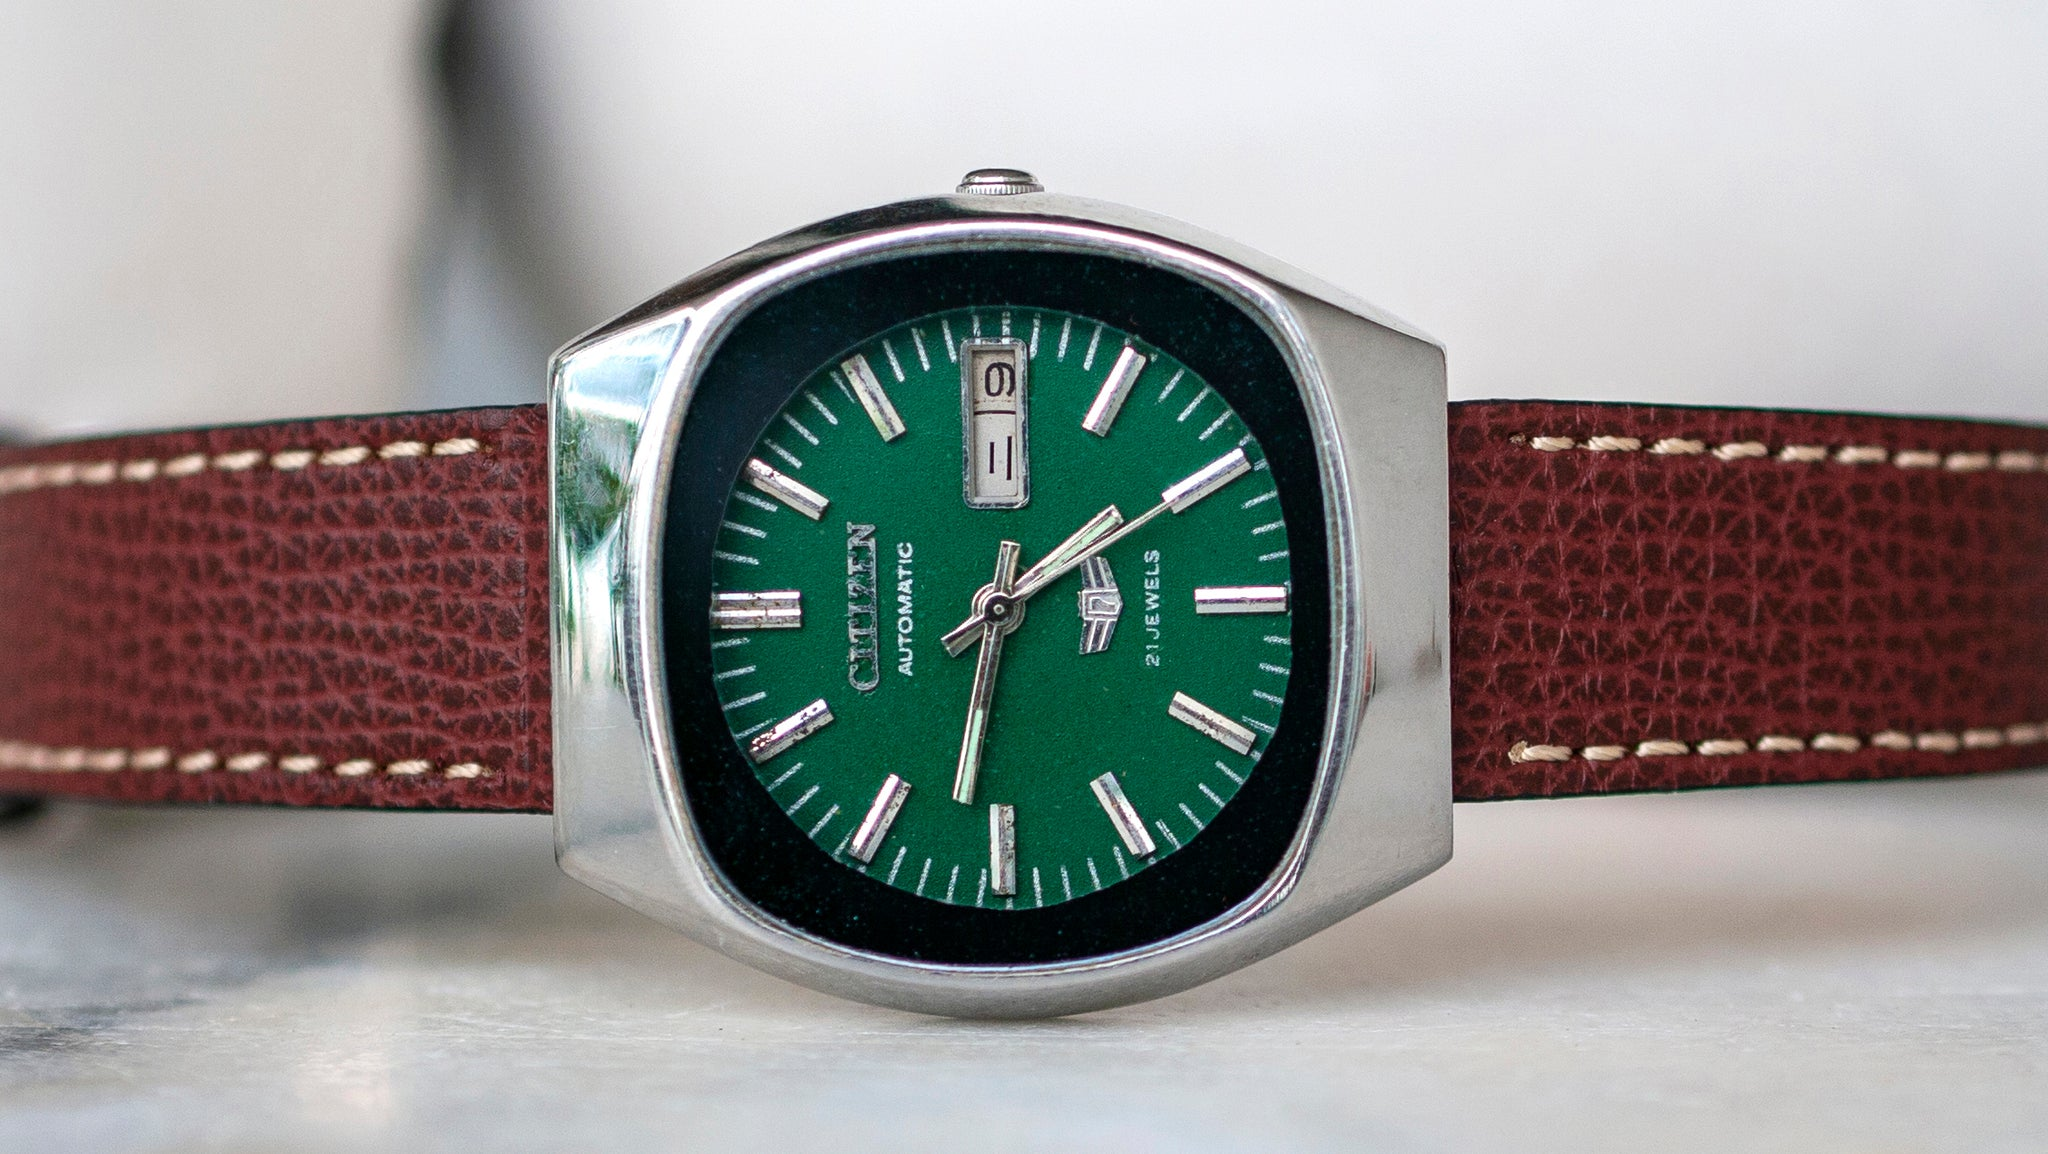 vario hodinkee style italian leather watch strap